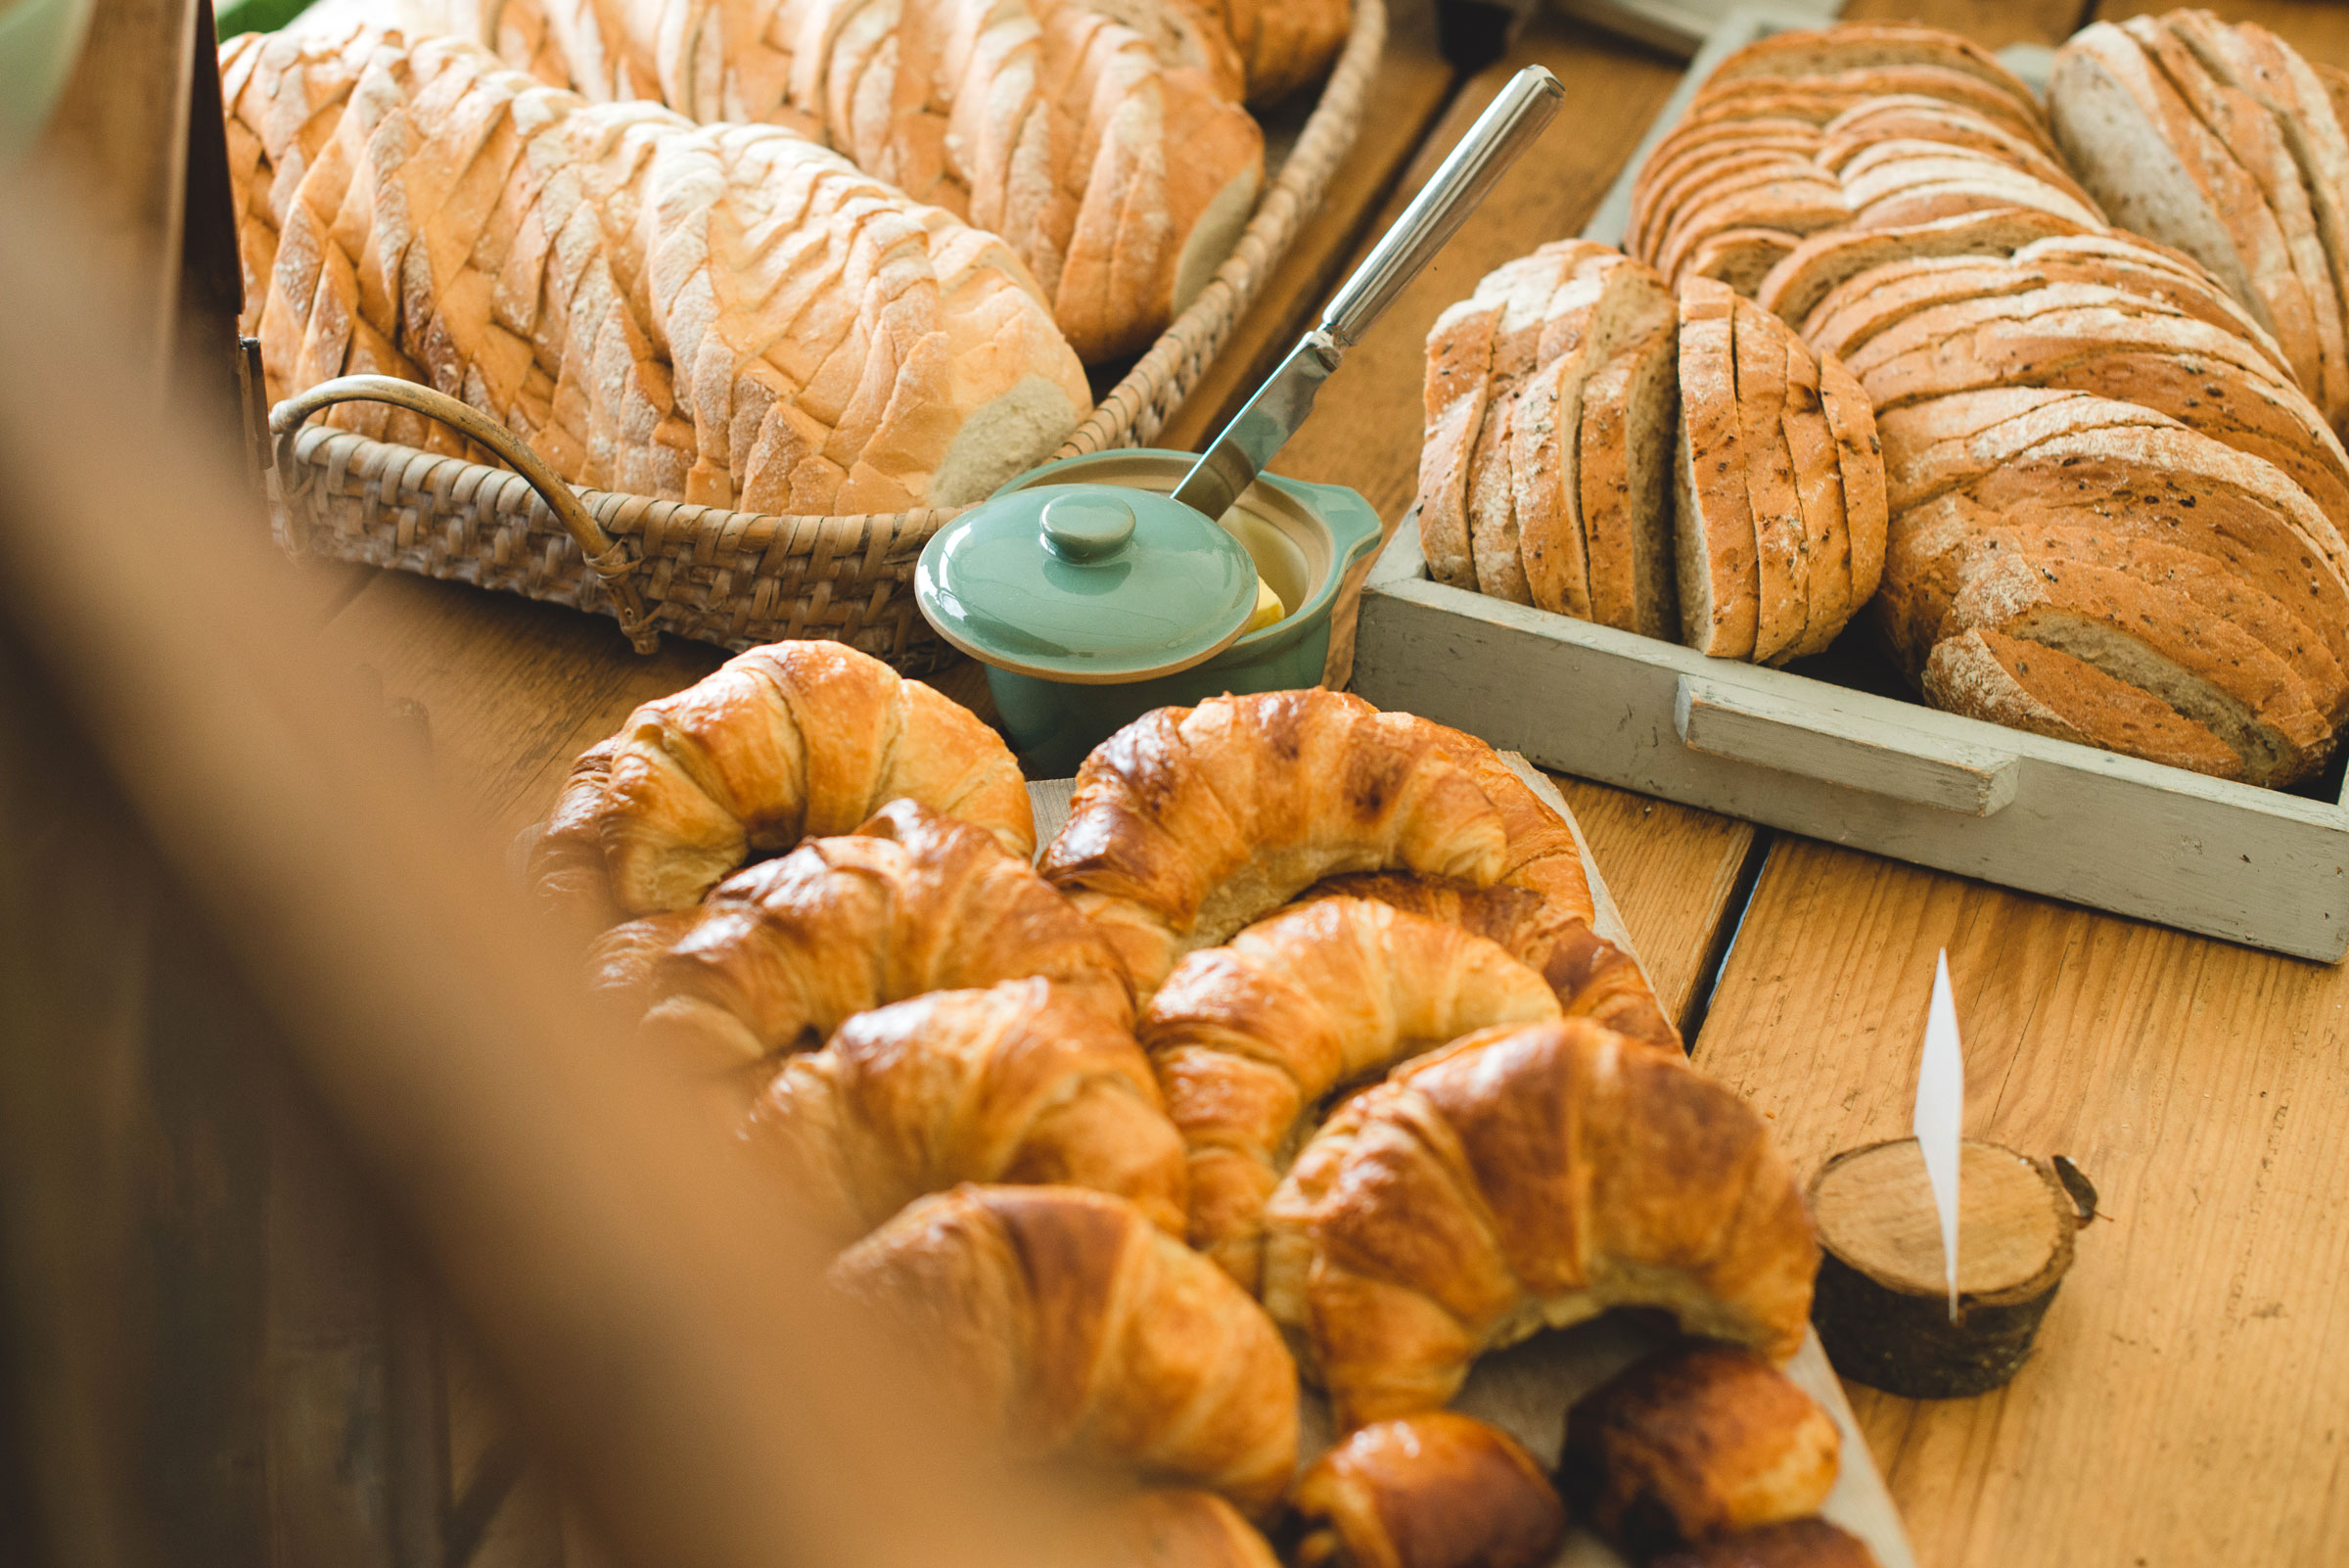 Daily fresh pastries and loaves of bread